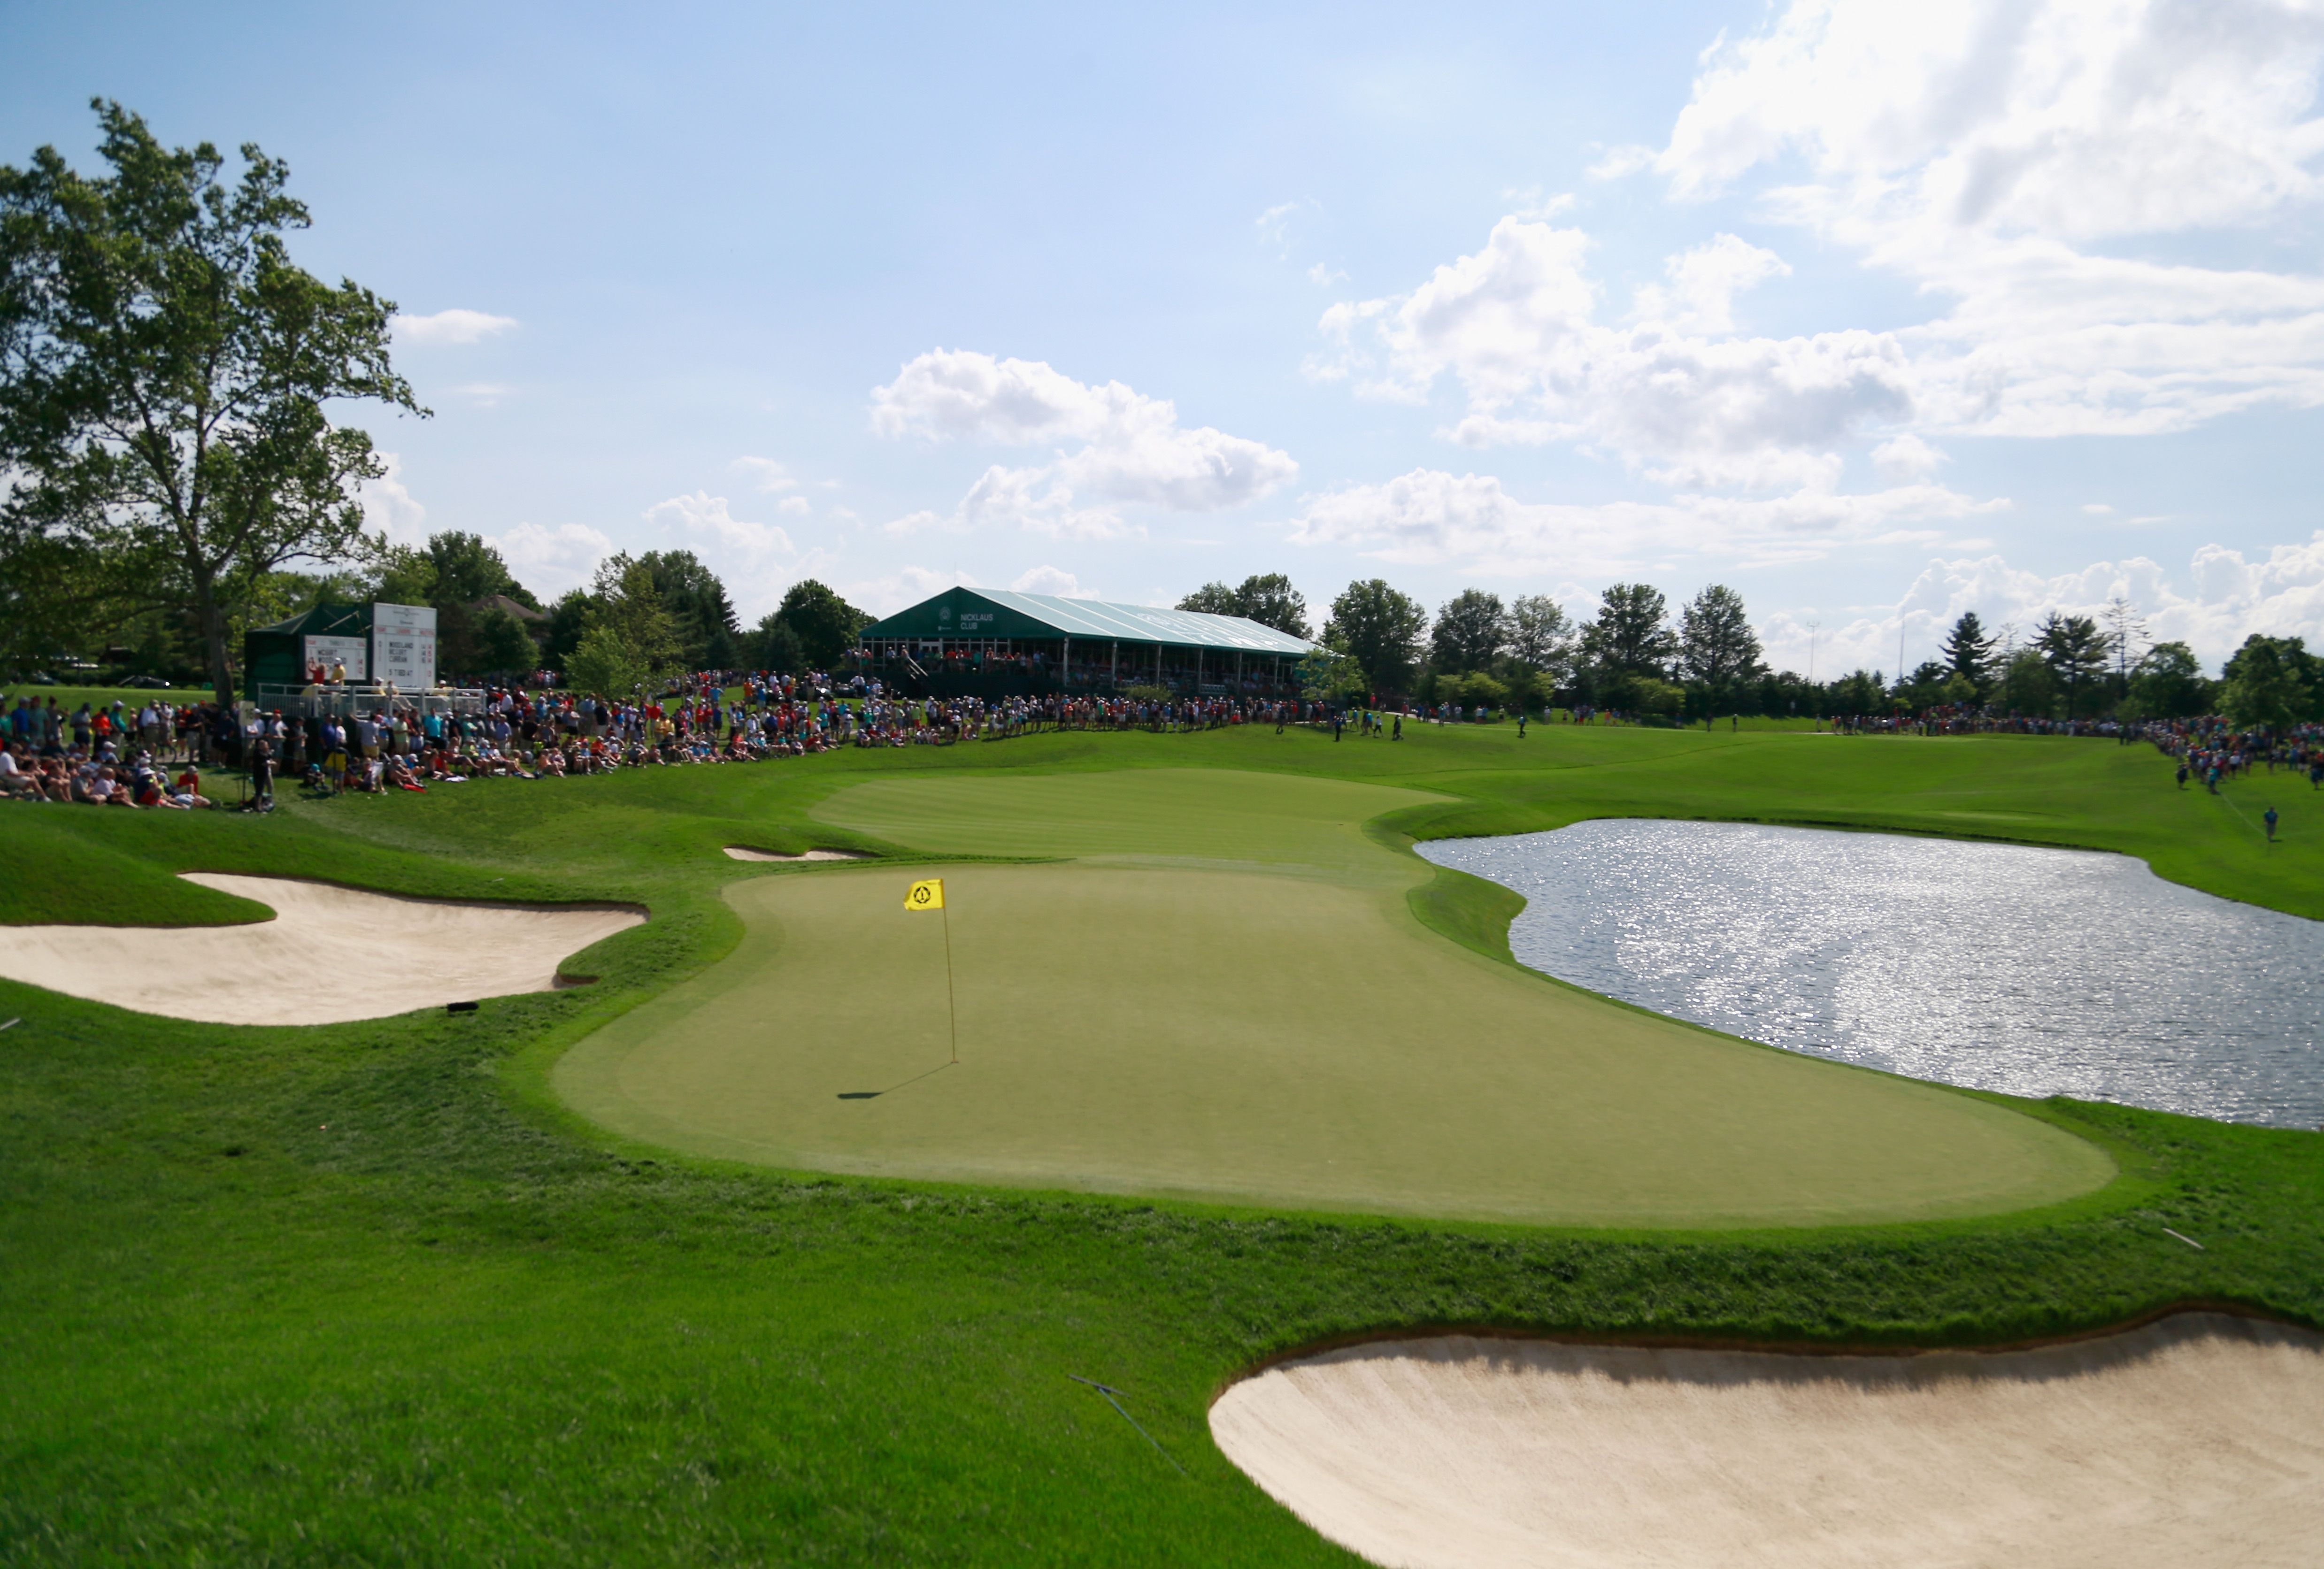 A general view of the 16th green at Muirfield Village Golf Club.